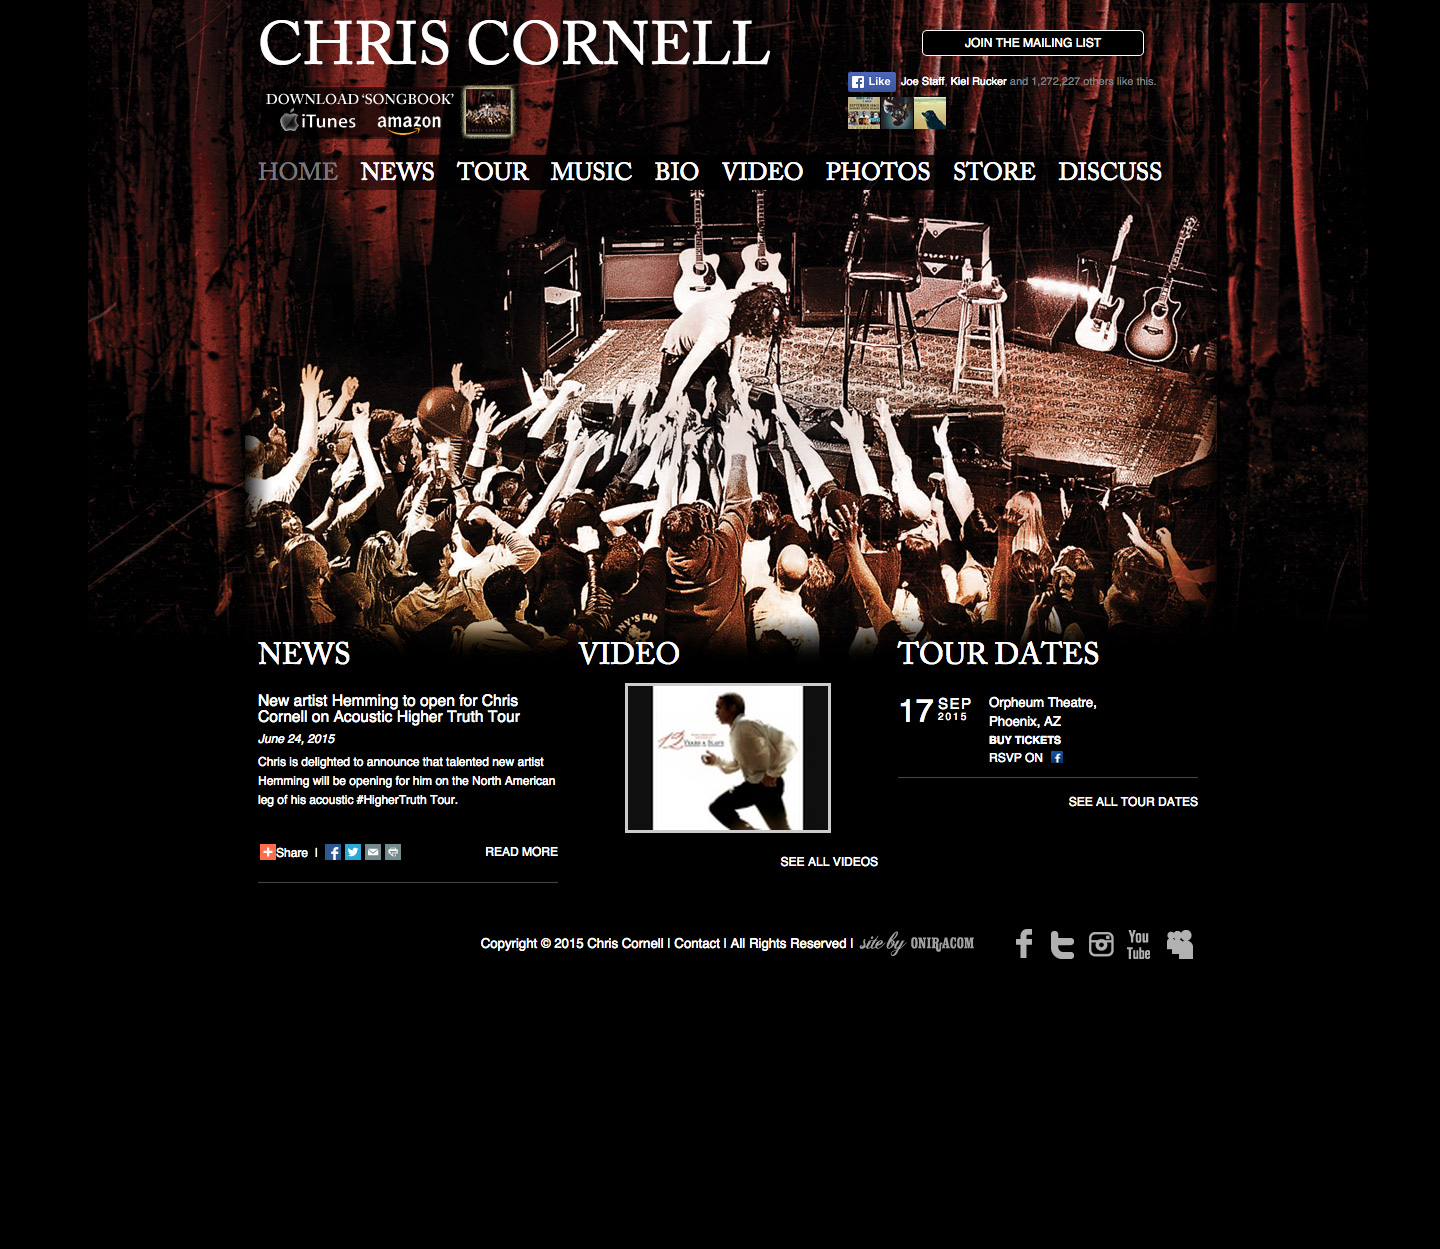 Chris Cornell website built by Aquatic in San Francisco